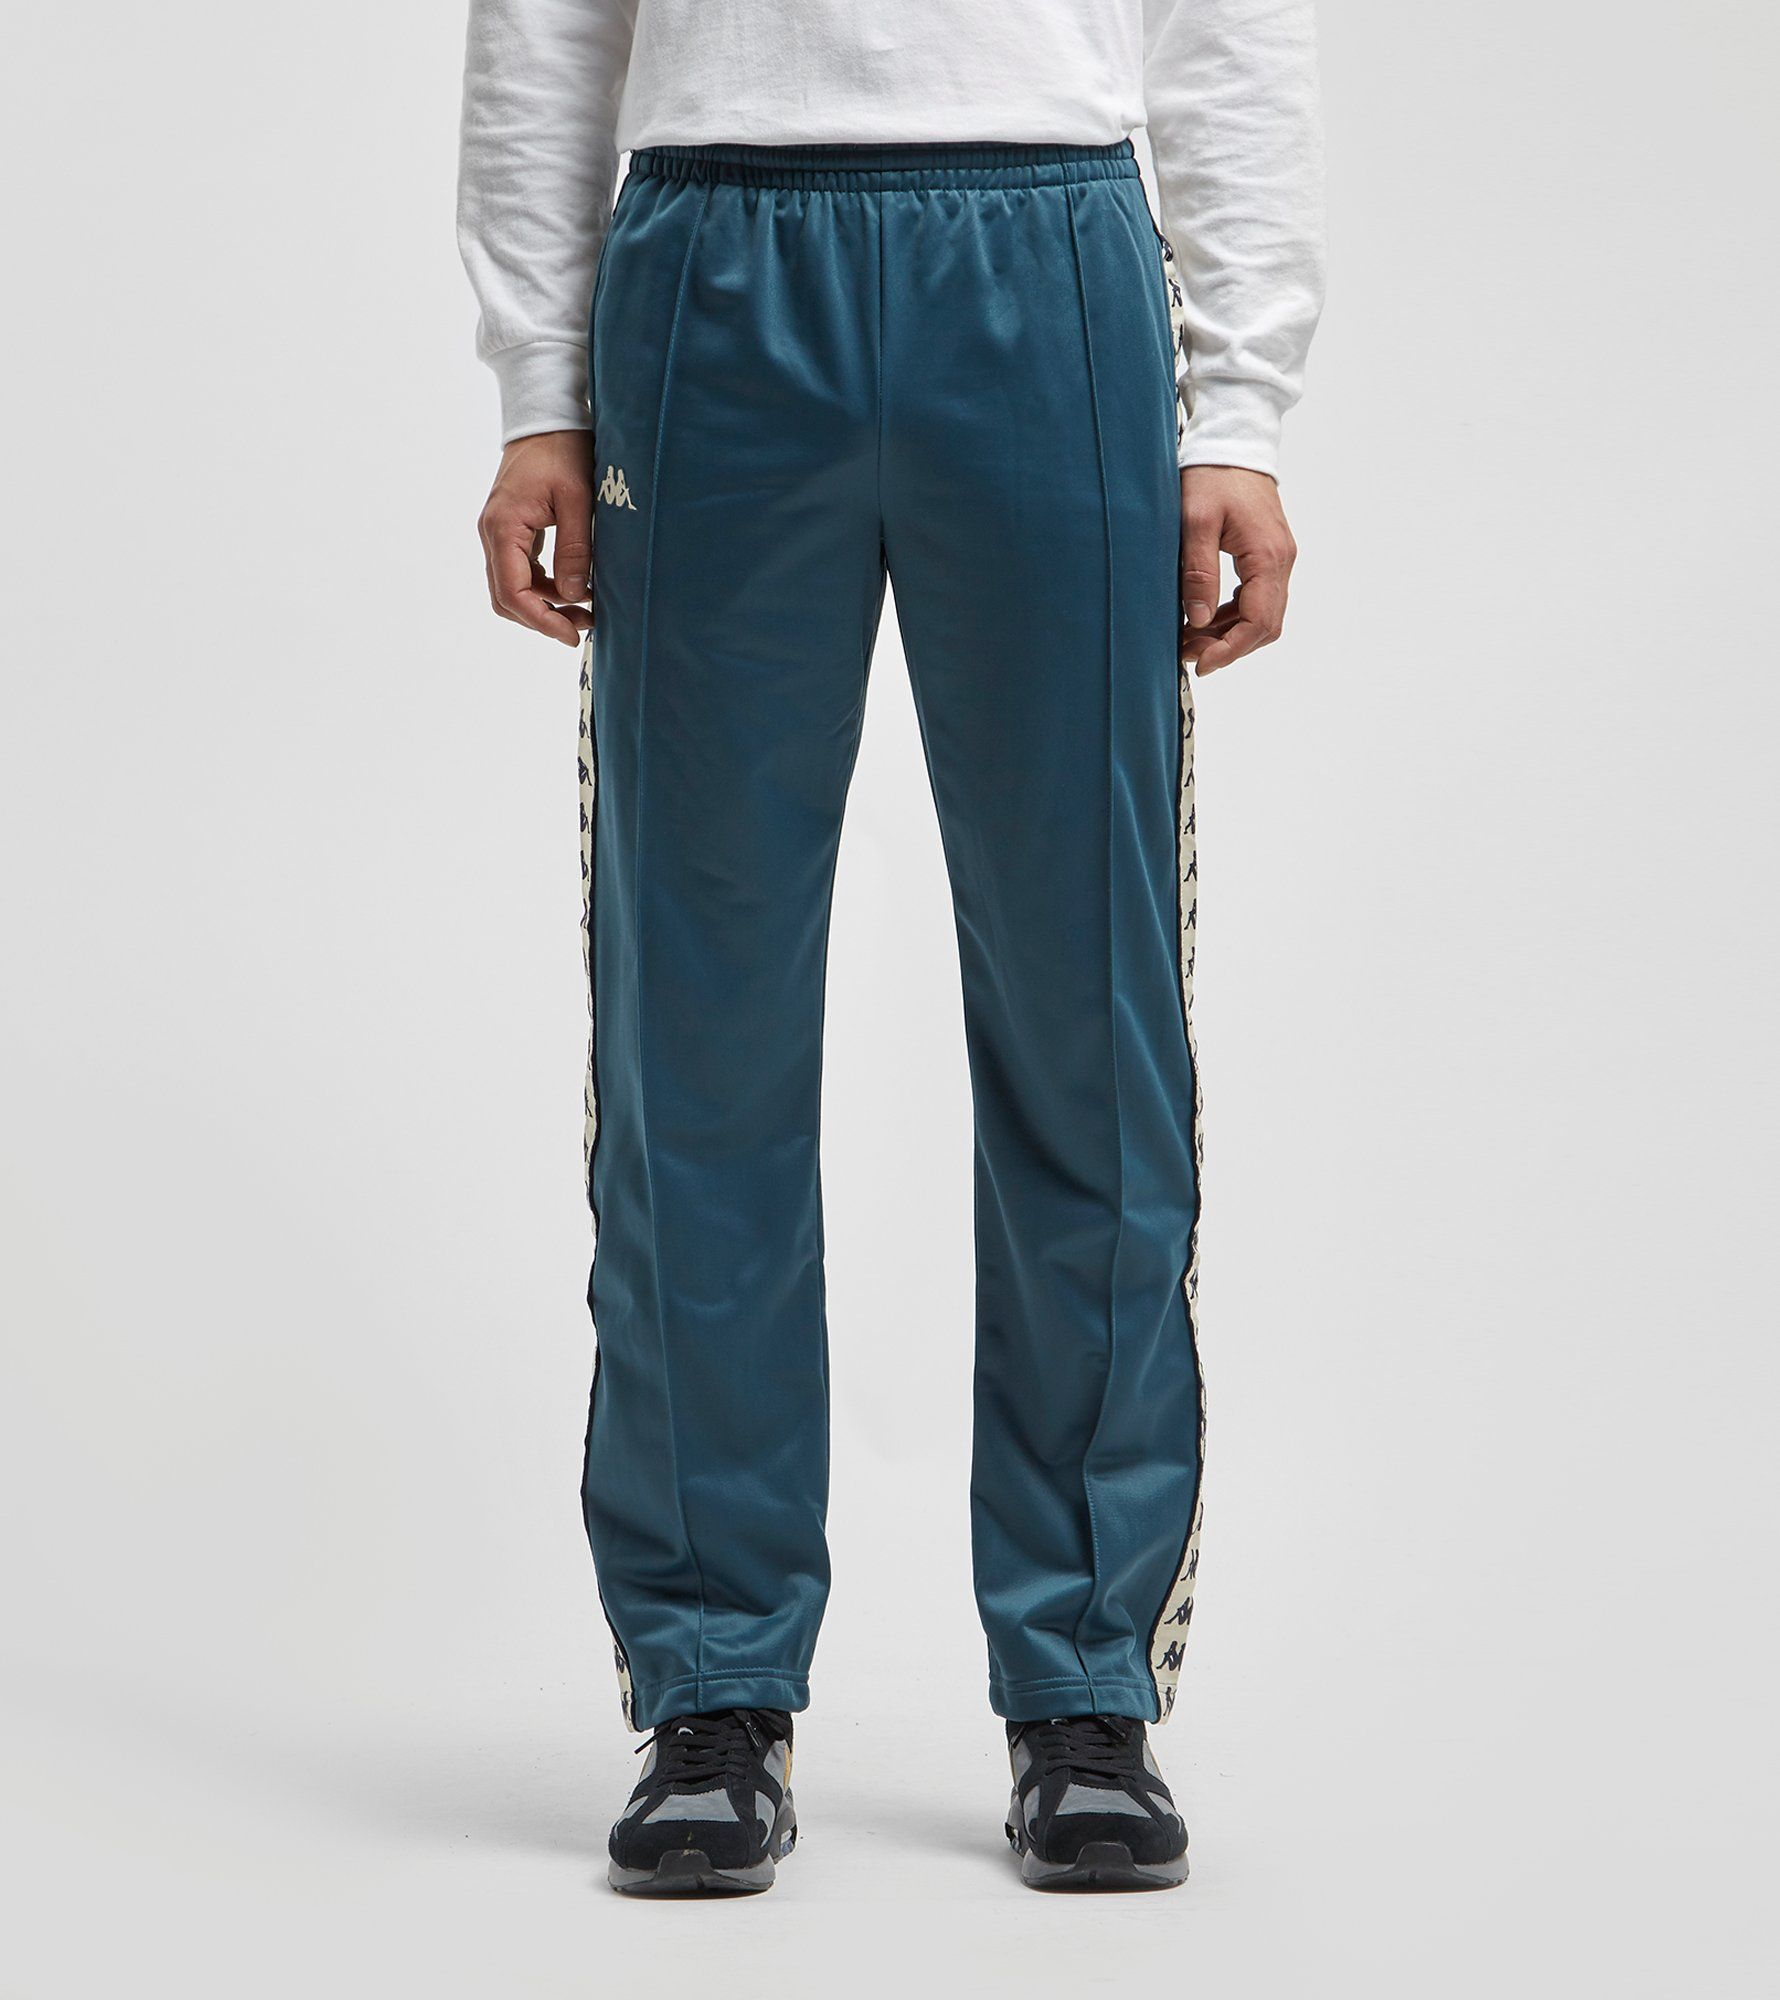 Kappa Astoria Snap Track Pants